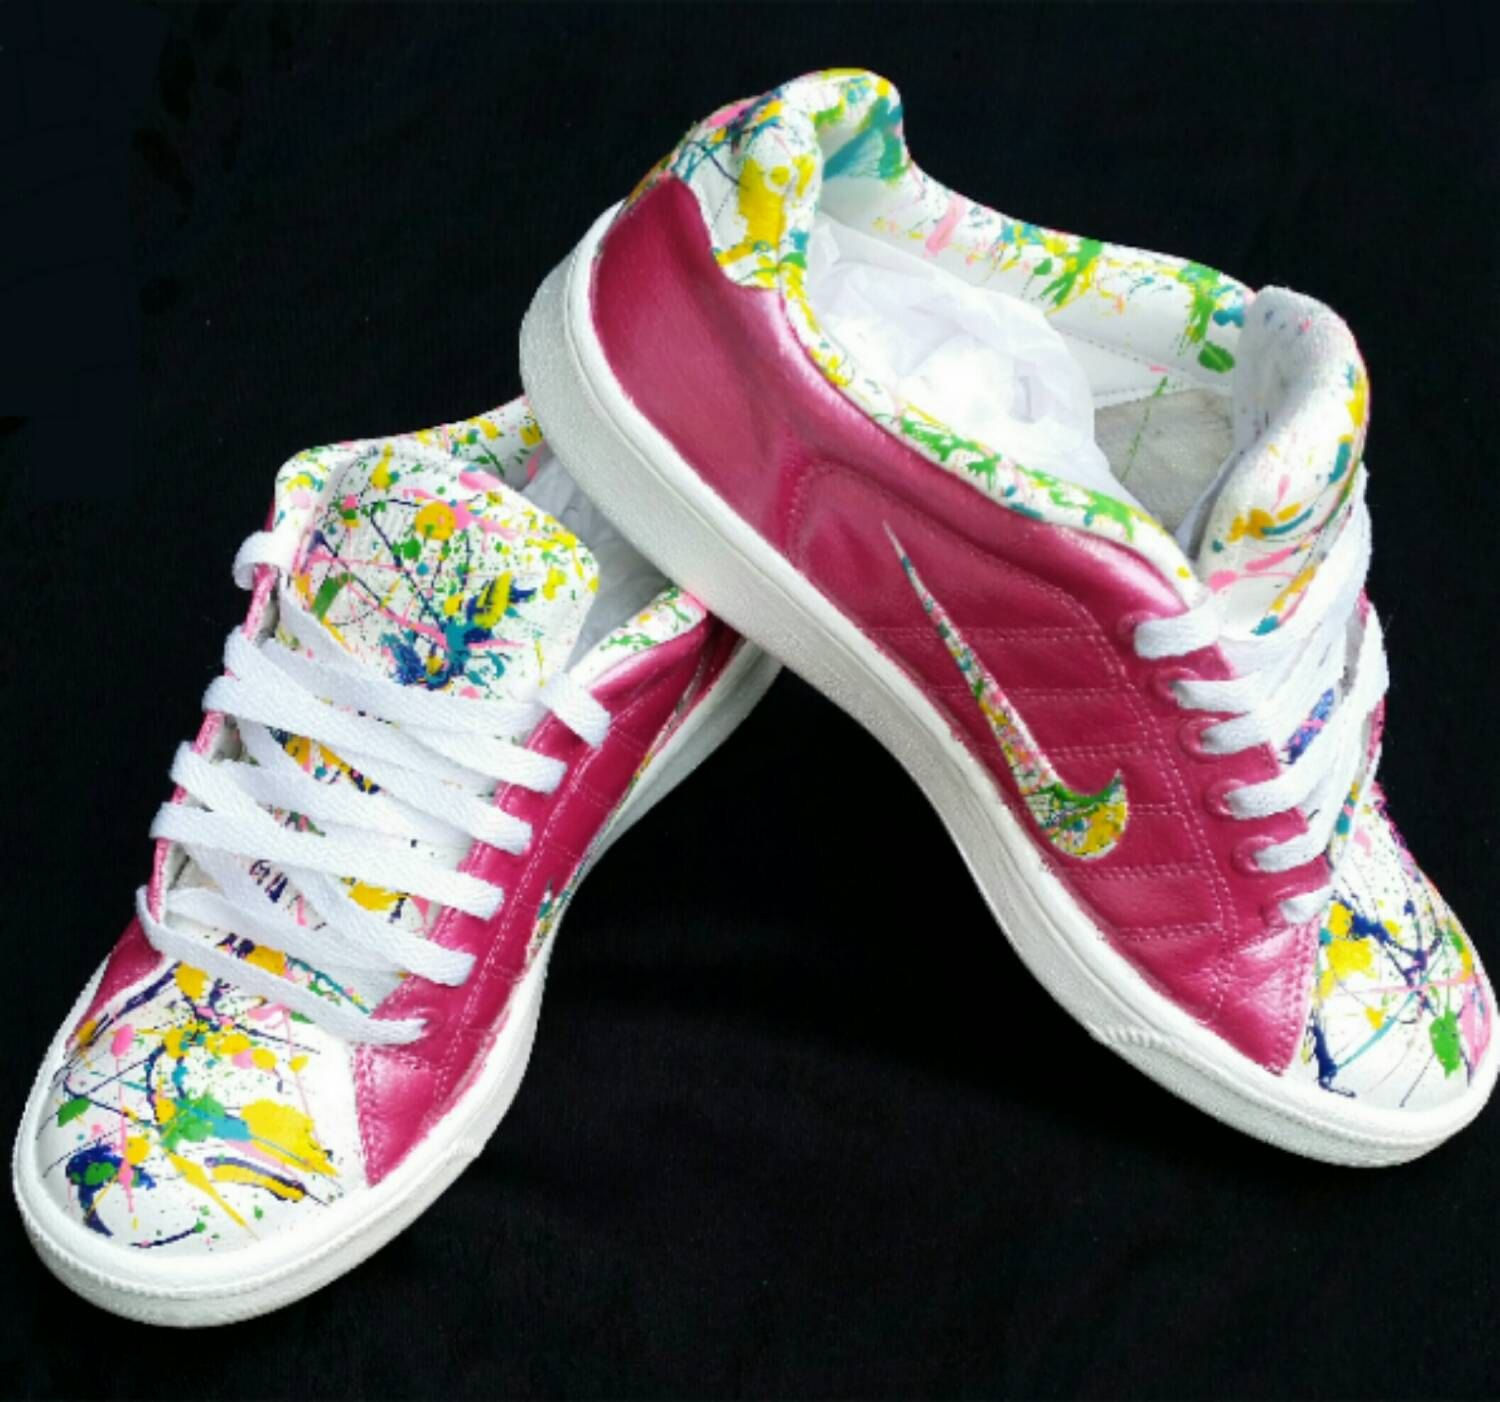 low priced b4d62 7501a Custom Painted- Splatter Painted- Nike s- Air Force Ones- Tennis Shoes-  Unisex Shoes- Any Colors- Any Size- Babies- Toddlers- Kids- Adults by  DivineKidz on ...